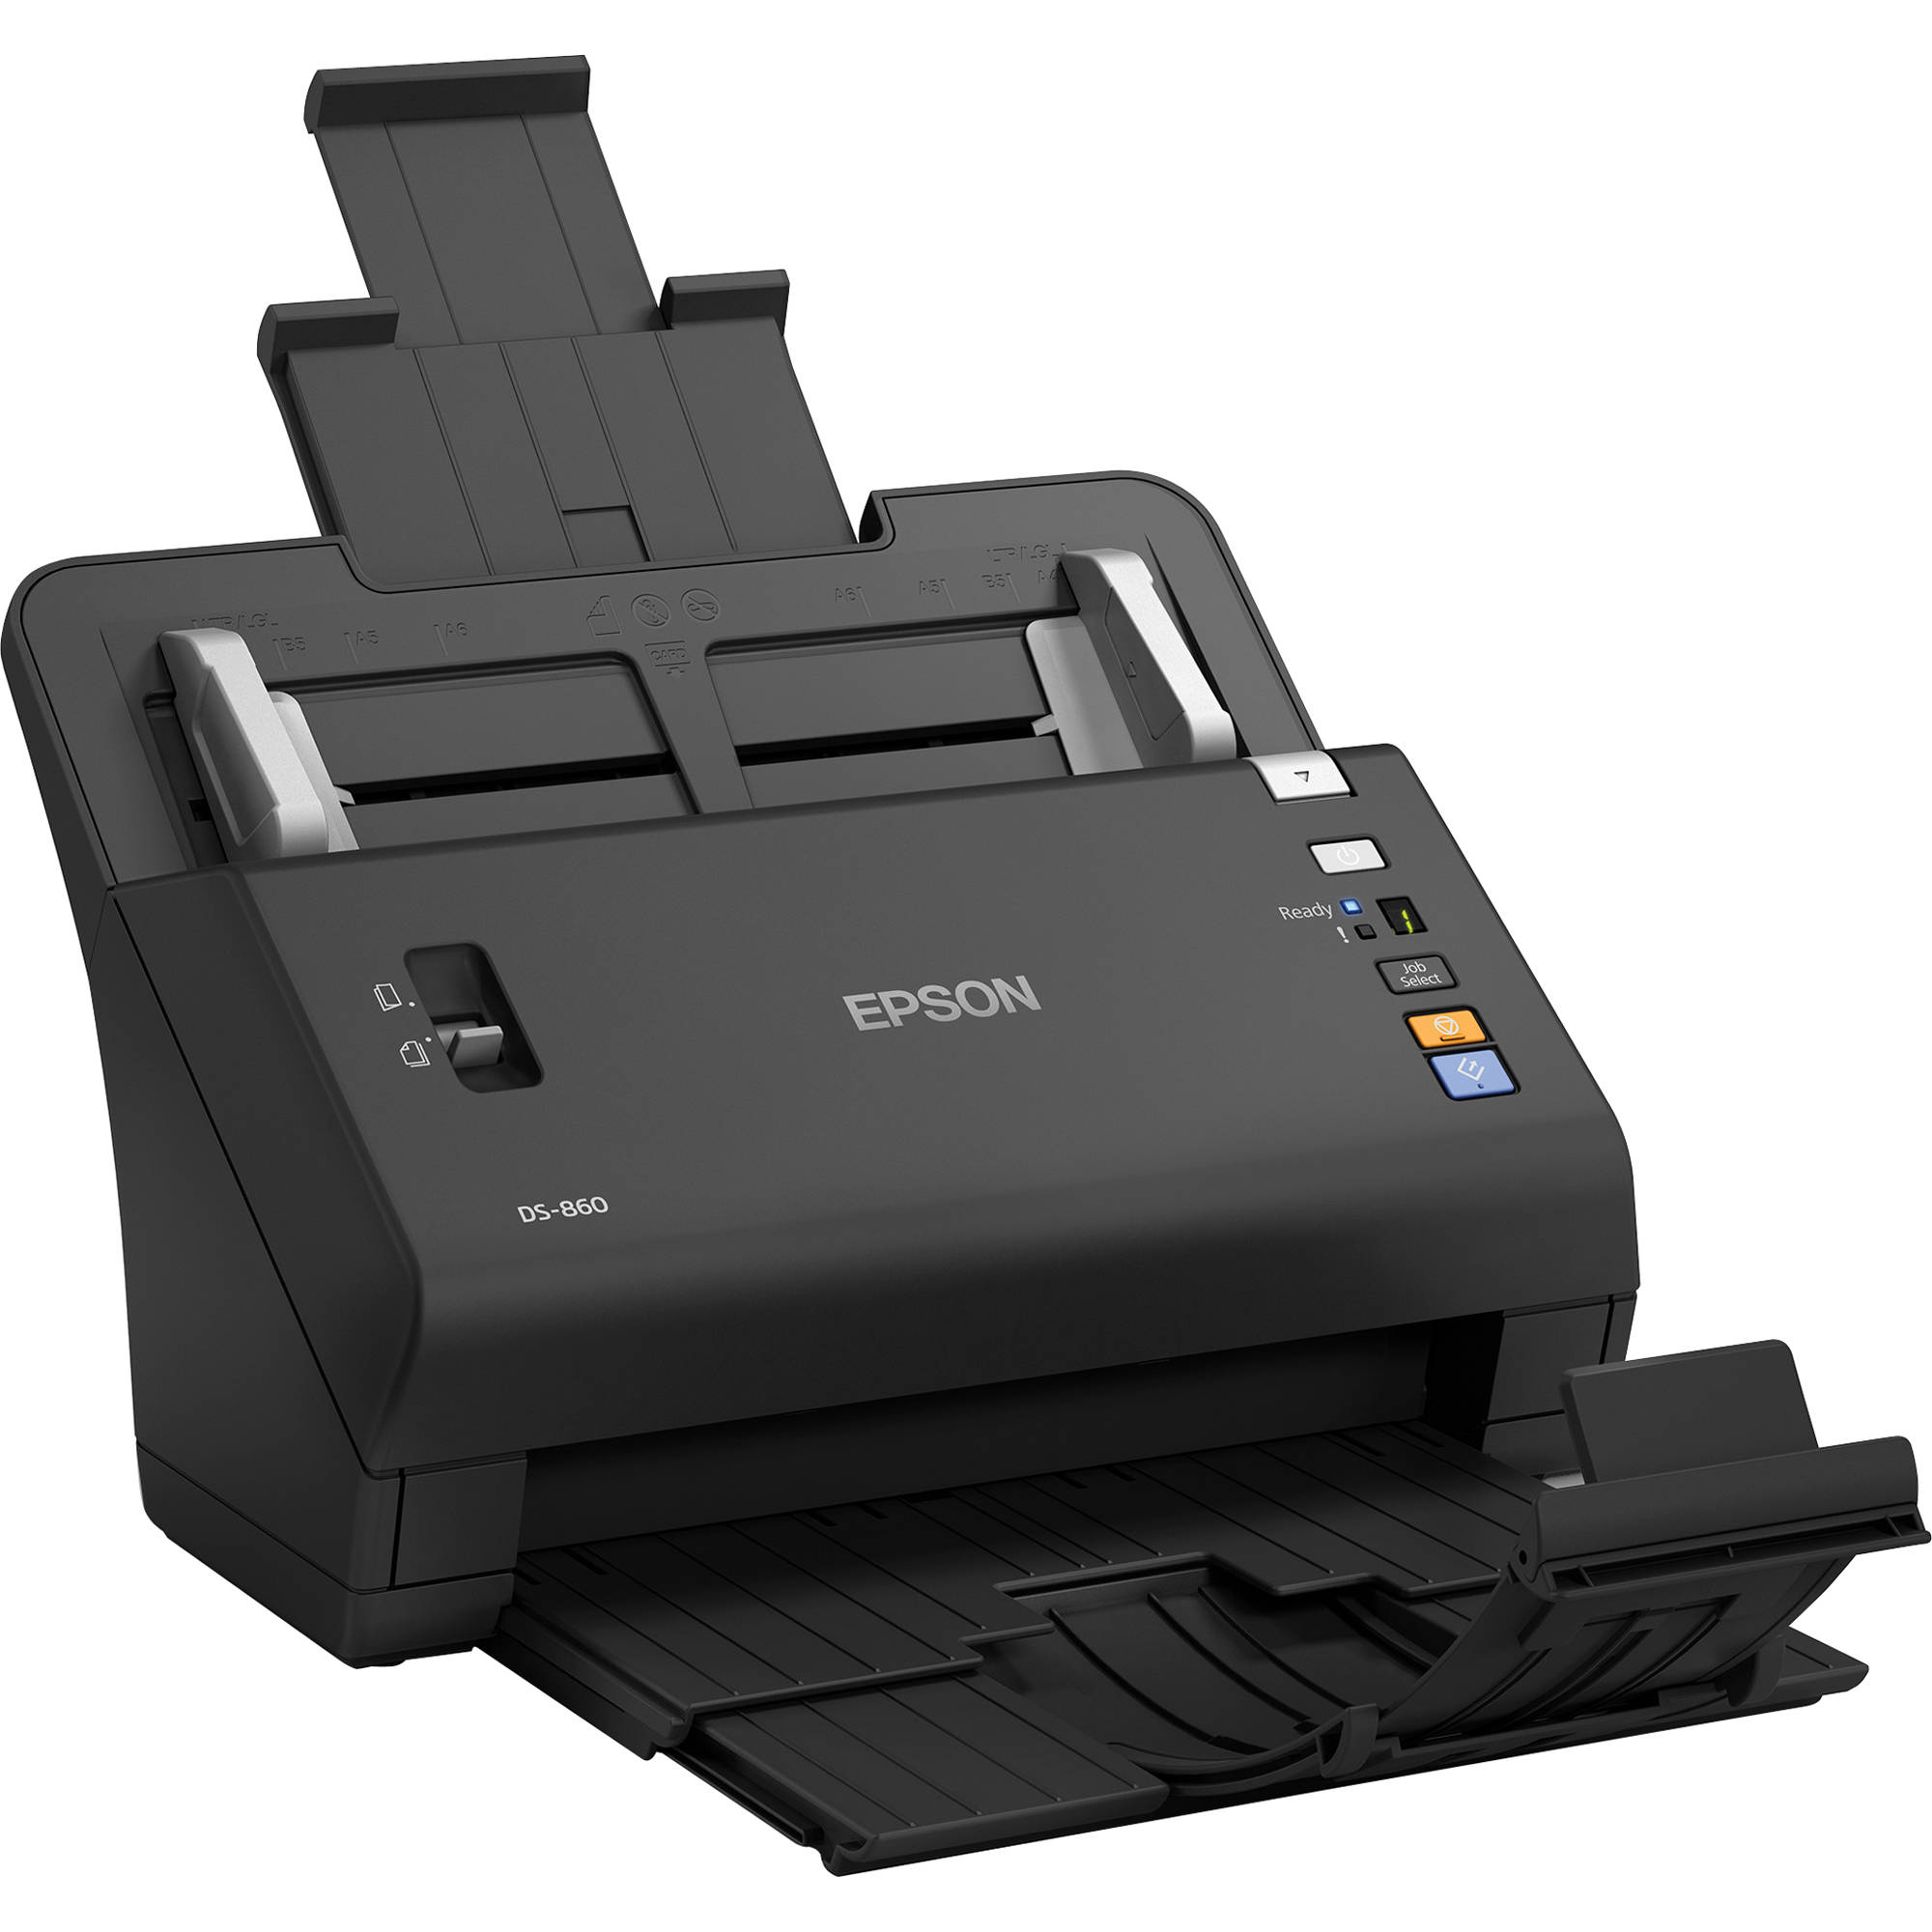 epson workforce ds 860 color document scanner b11b222201 bh With epson workforce ds 860 color document scanner